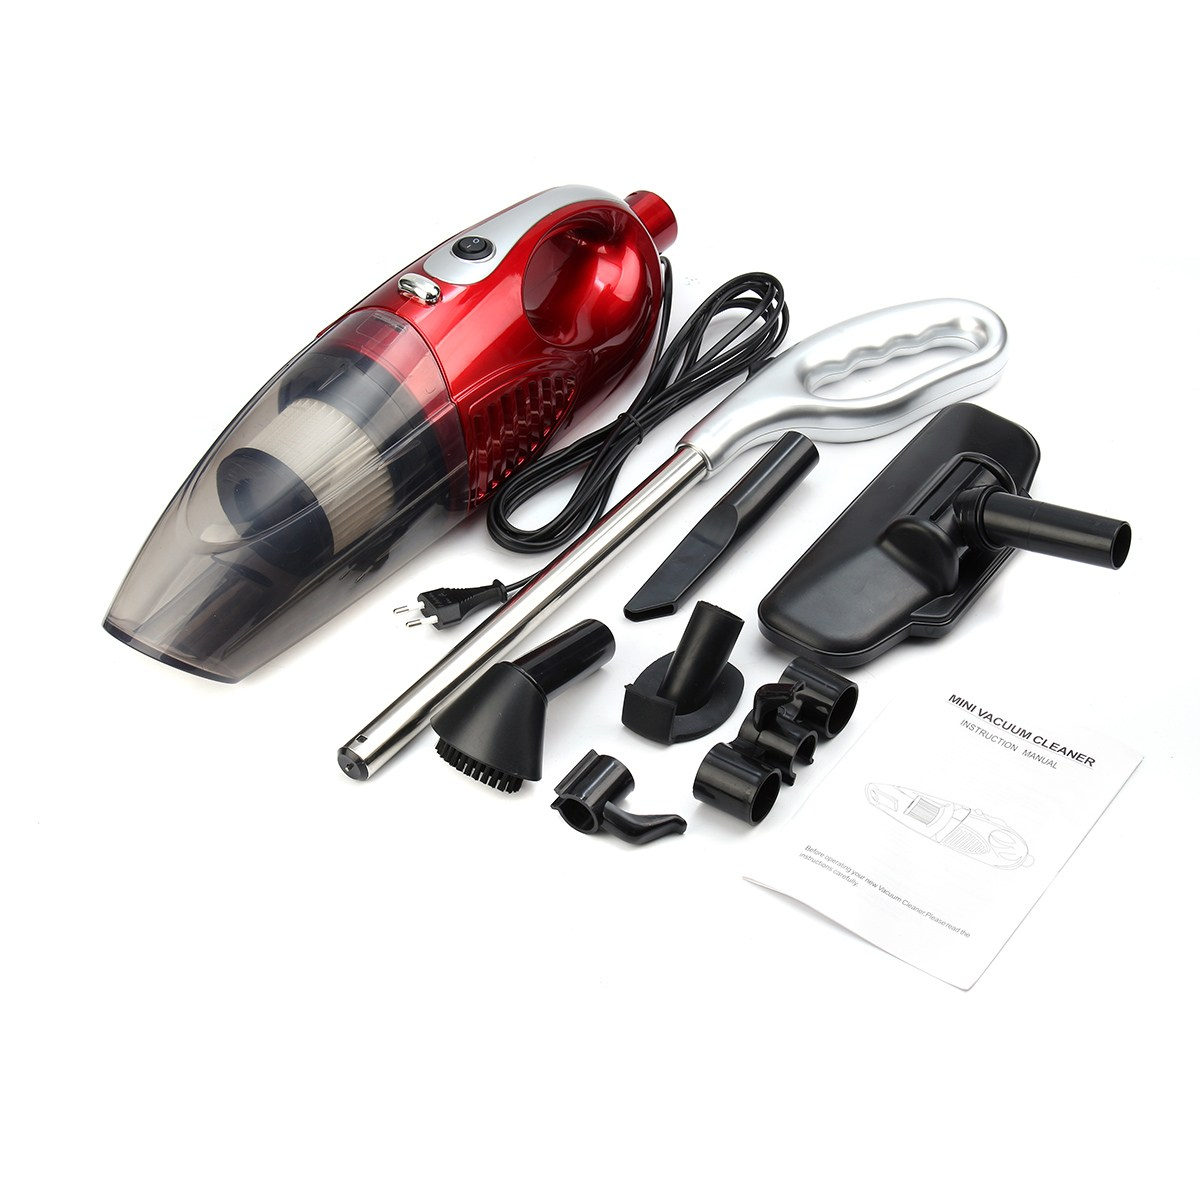 2 in 1 1200W Household Car Home Vacuum Cleaner Hand Held Portable Upright Bagless Lightweight